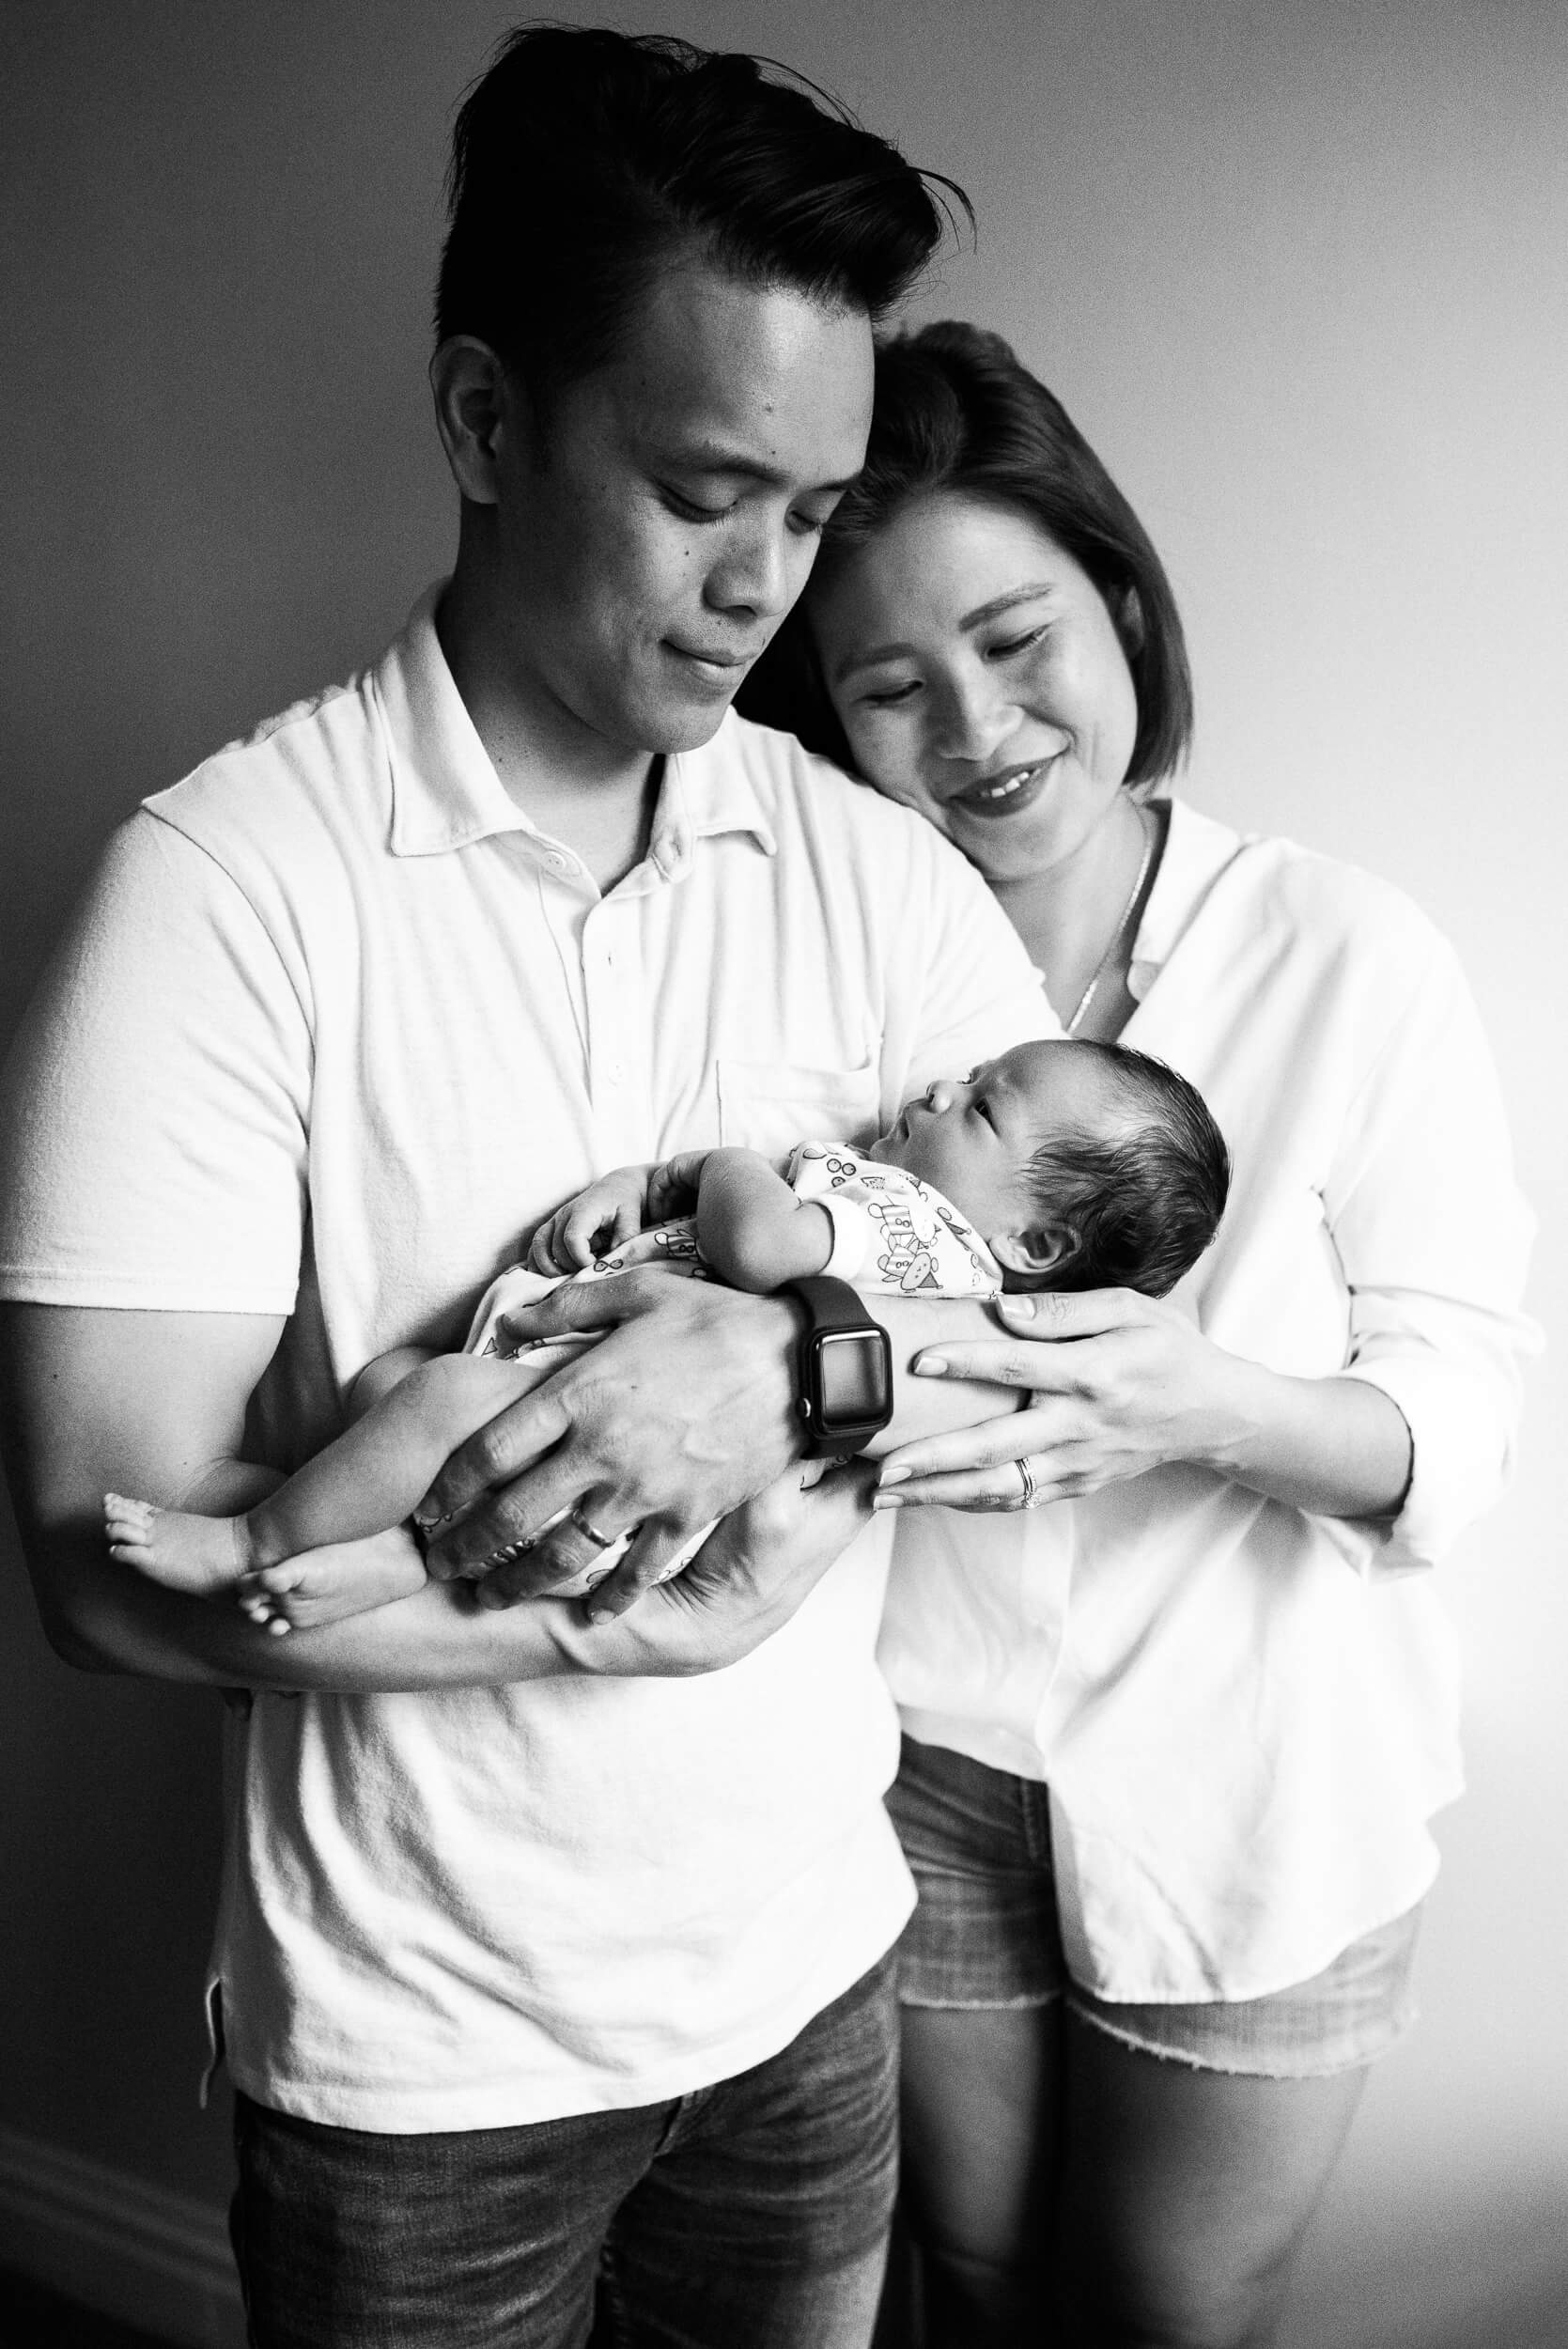 black and white photo in home lifestyle newborn photographer lindsey victoria photography park slope brooklyn ny